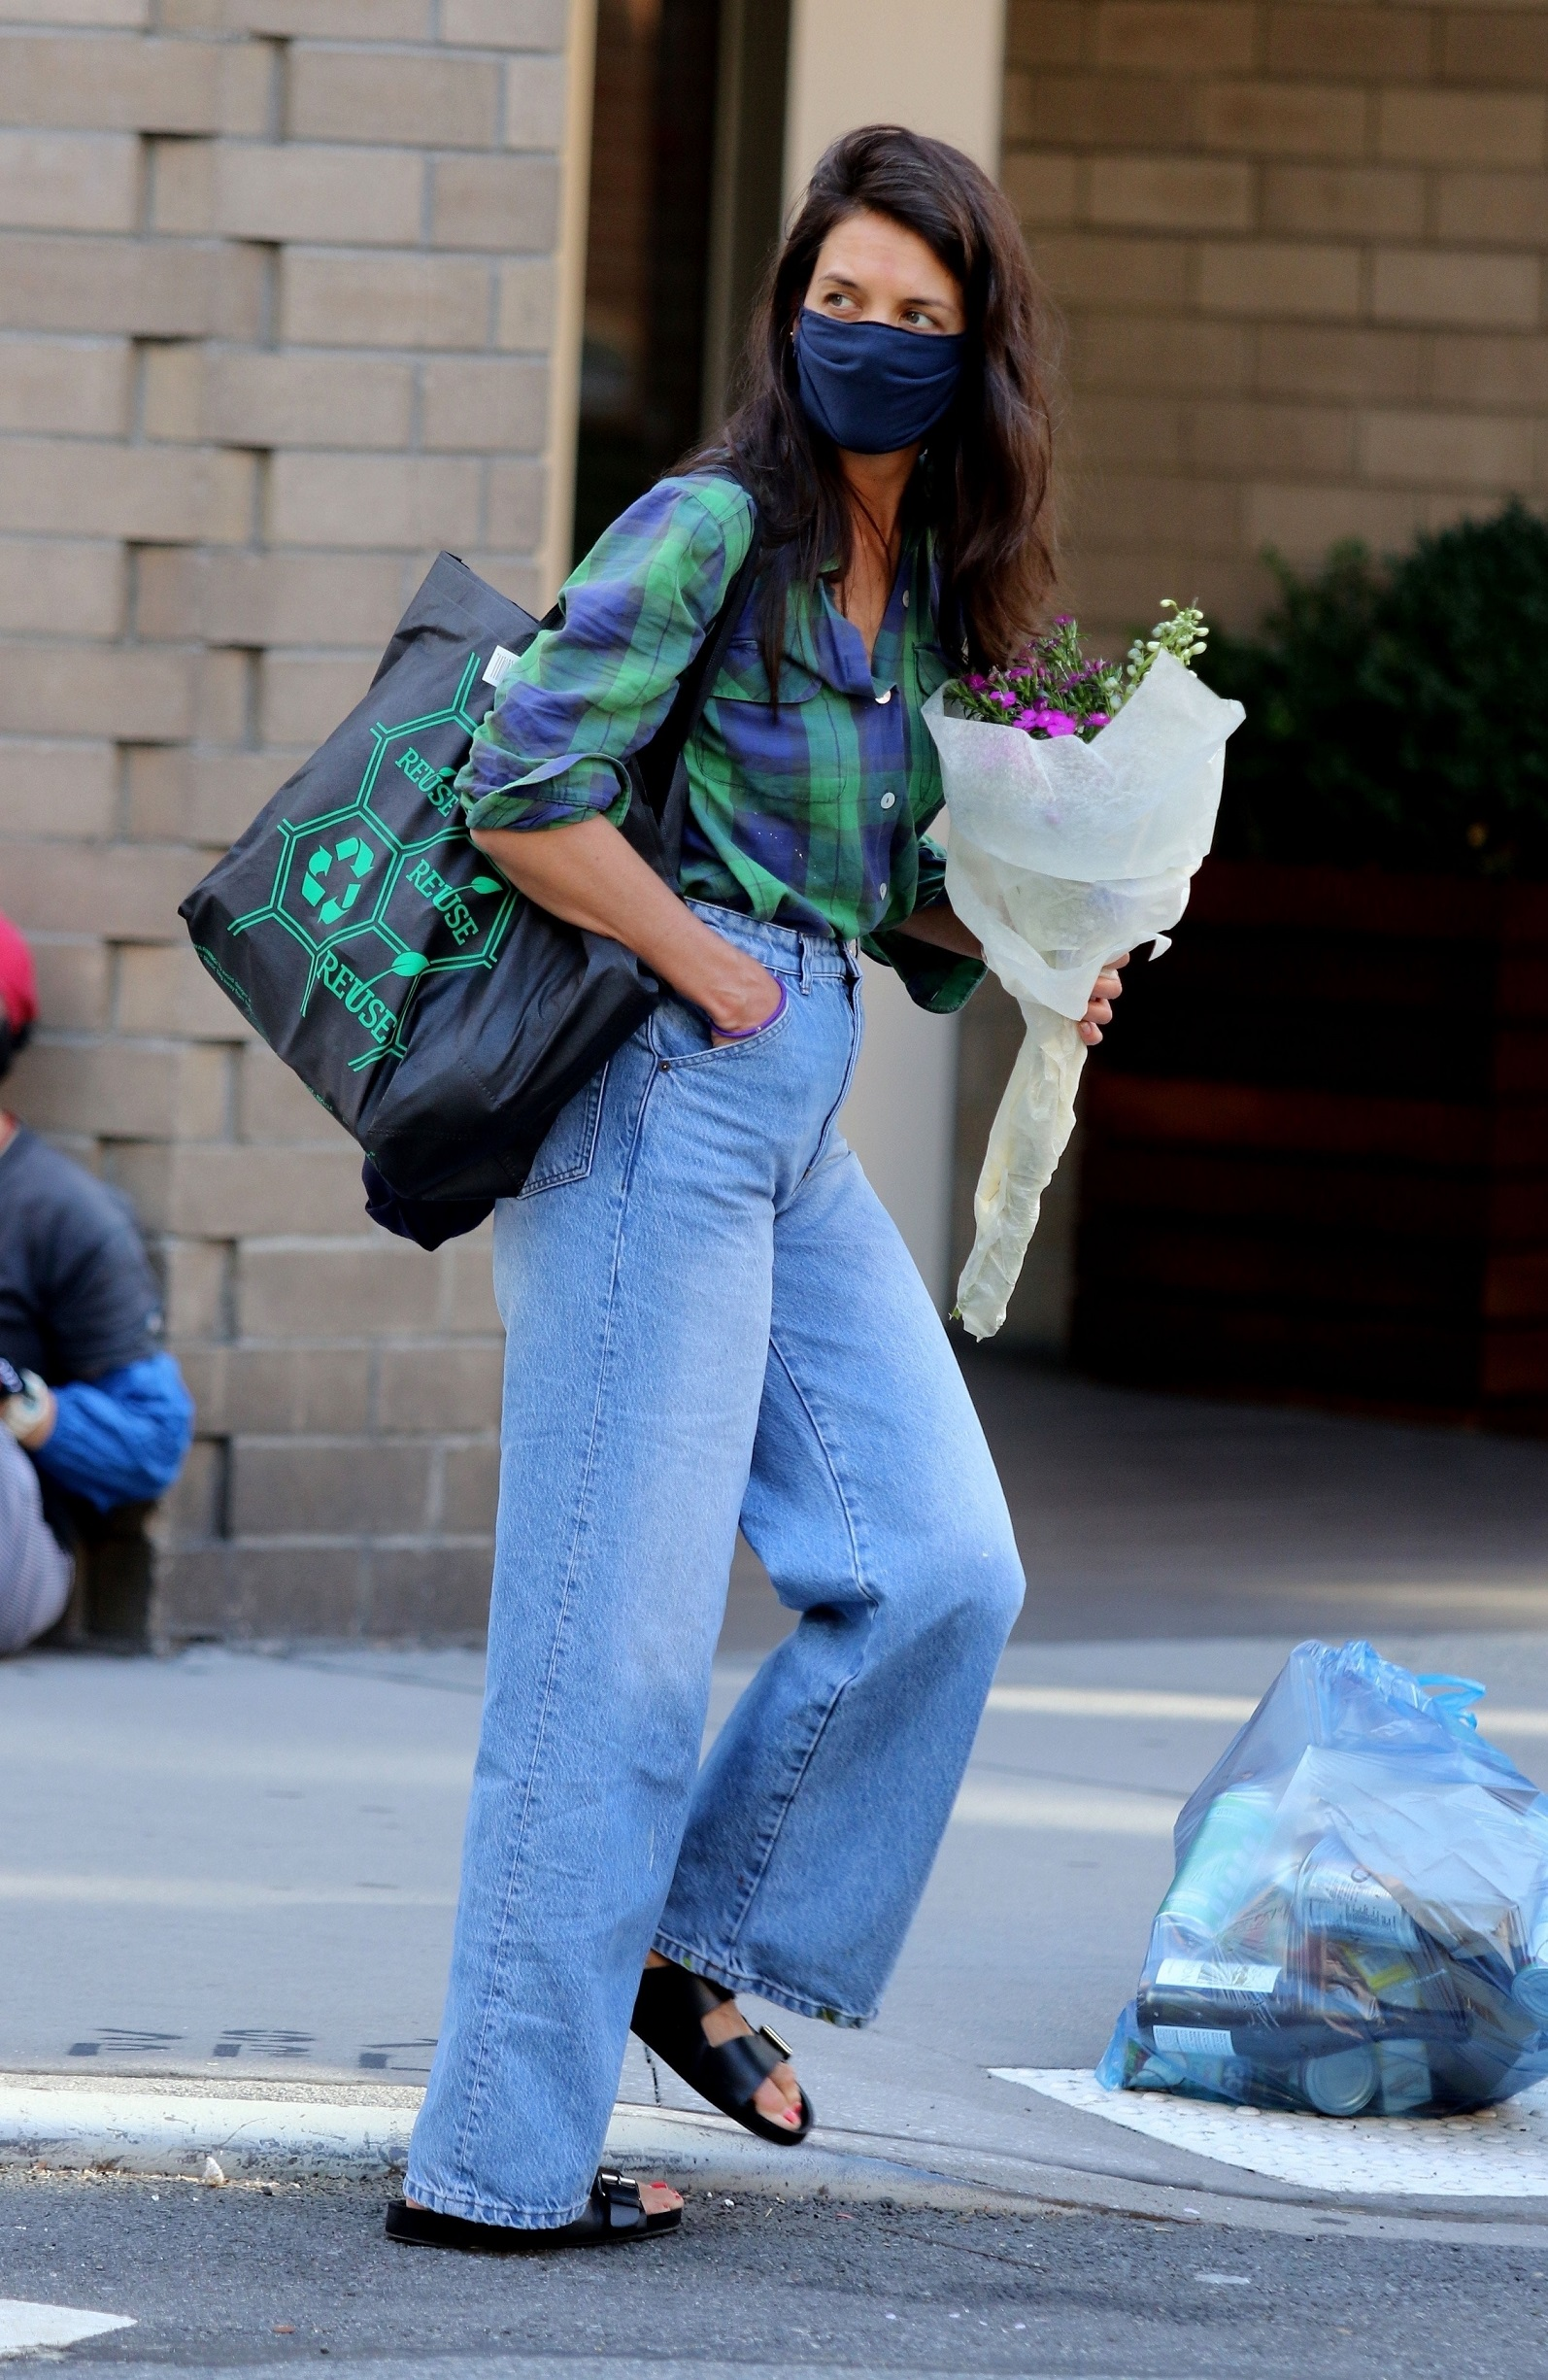 New York City, NY  - Katie Holmes is seen carrying a bouquet of flowers and later shops at a Downtown Manhattan supermarket.  BACKGRID USA 18 AUGUST 2020,Image: 553578179, License: Rights-managed, Restrictions: , Model Release: no, Credit line: BrosNYC / BACKGRID / Backgrid USA / Profimedia